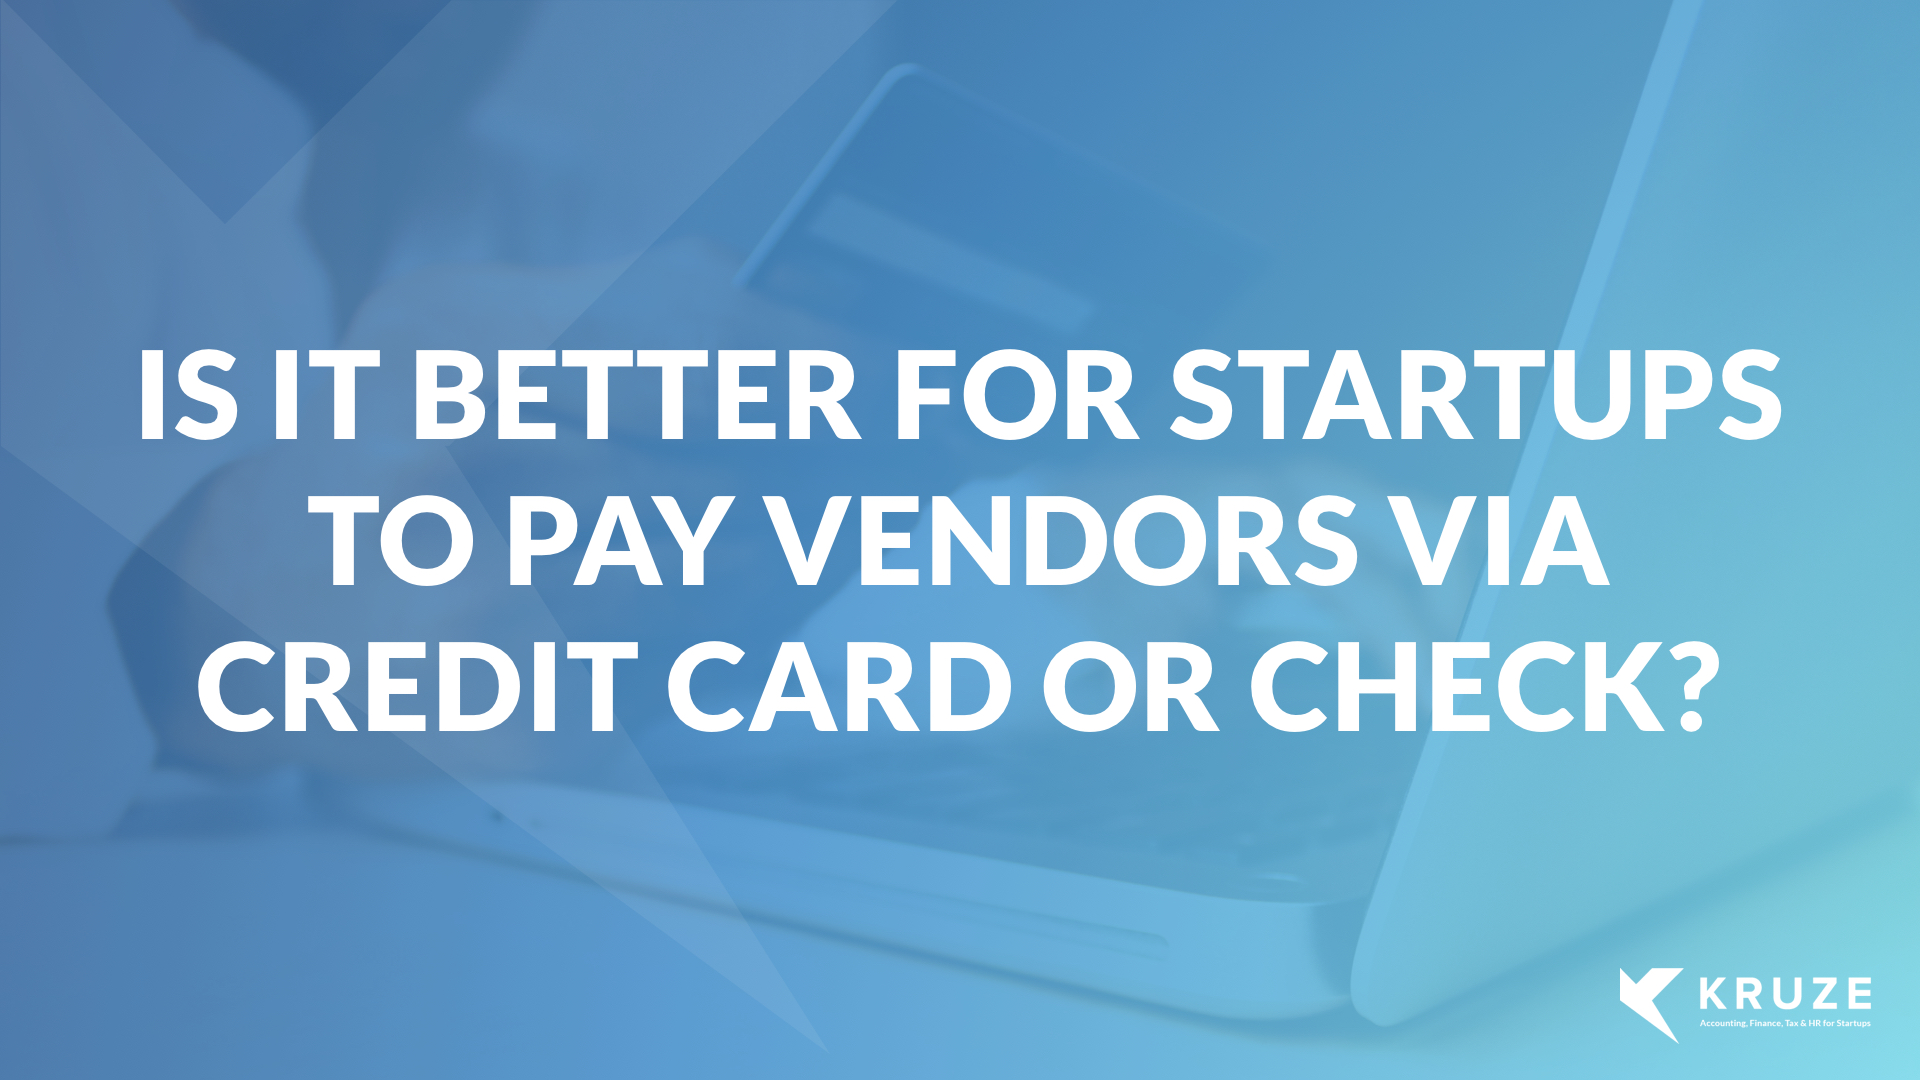 Is it better for startups to pay a vendor via a check or credit card?